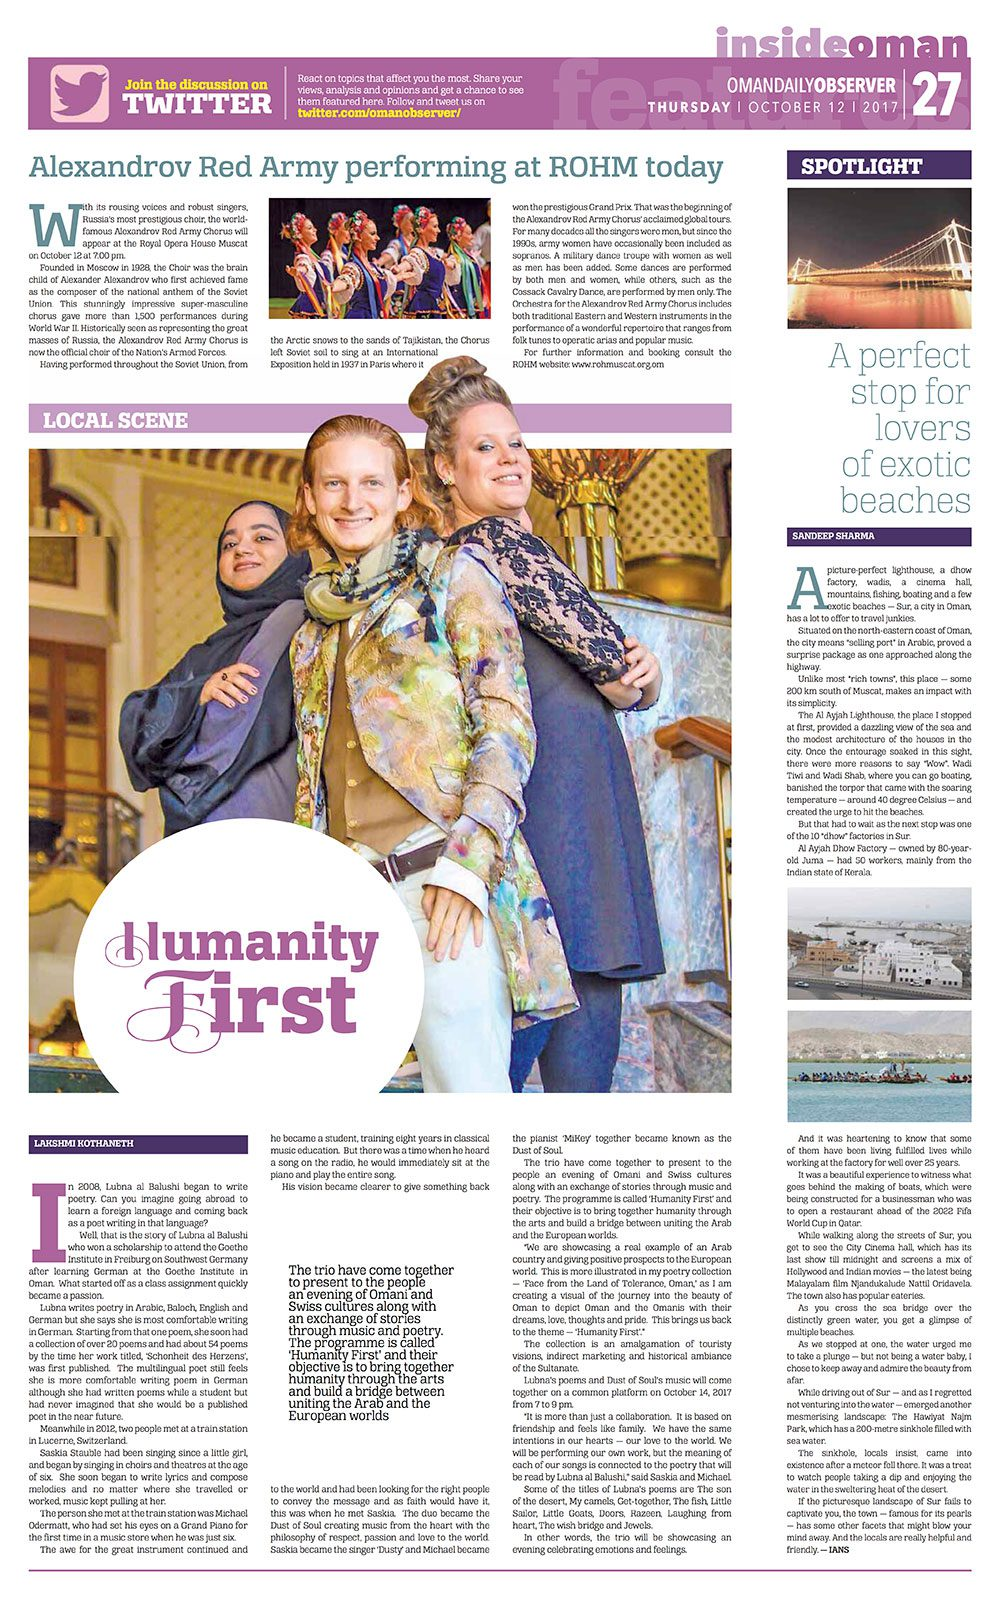 Humanity First – Oman Daily Observer